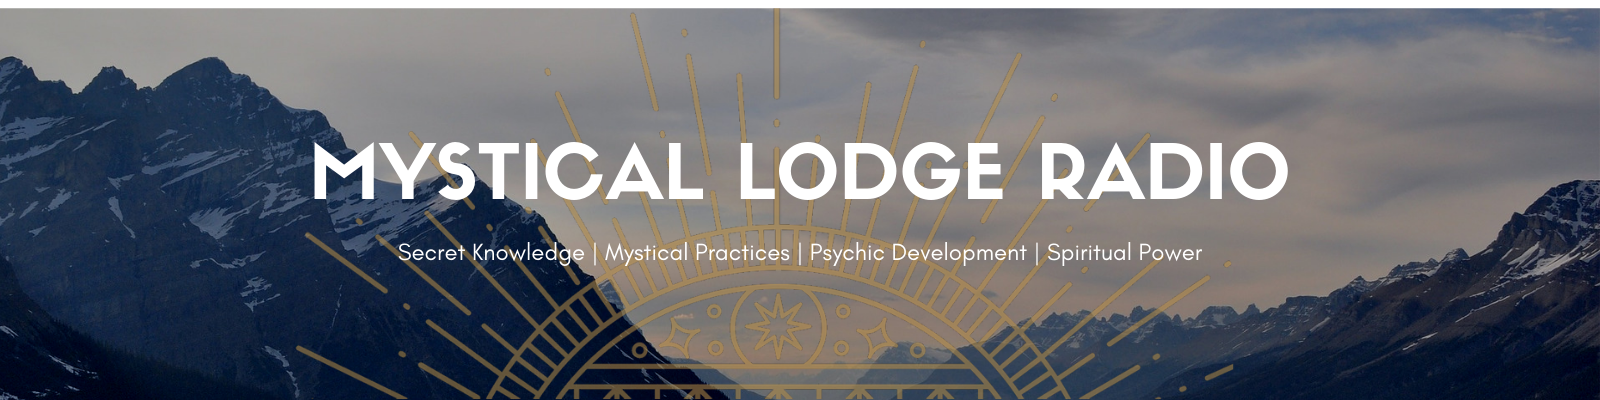 livio amato,mystical lodge radio,web radio